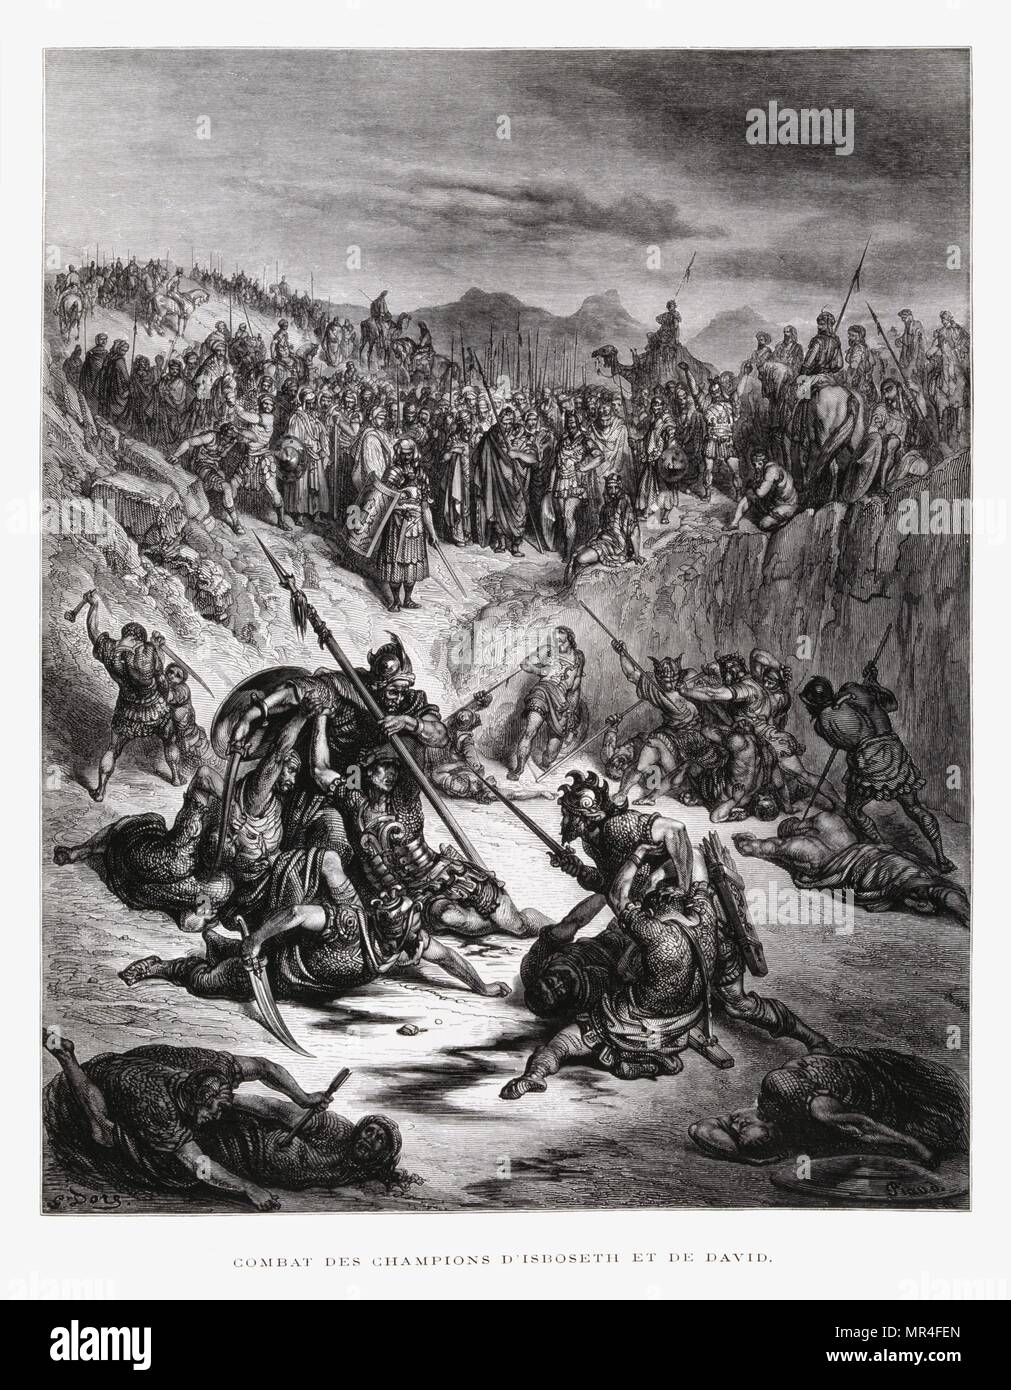 Combat Soldiers of Ish-bosheth and David, Illustration from the Dore Bible 1866. In 1866, the French artist and illustrator Gustave Dore (1832–1883), published a series of 241 wood engravings for a new deluxe edition of the 1843 French translation of the Vulgate Bible, popularly known as the Bible de Tours. This new edition was known as La Grande Bible de Tours and its illustrations were immensely successful. - Stock Image